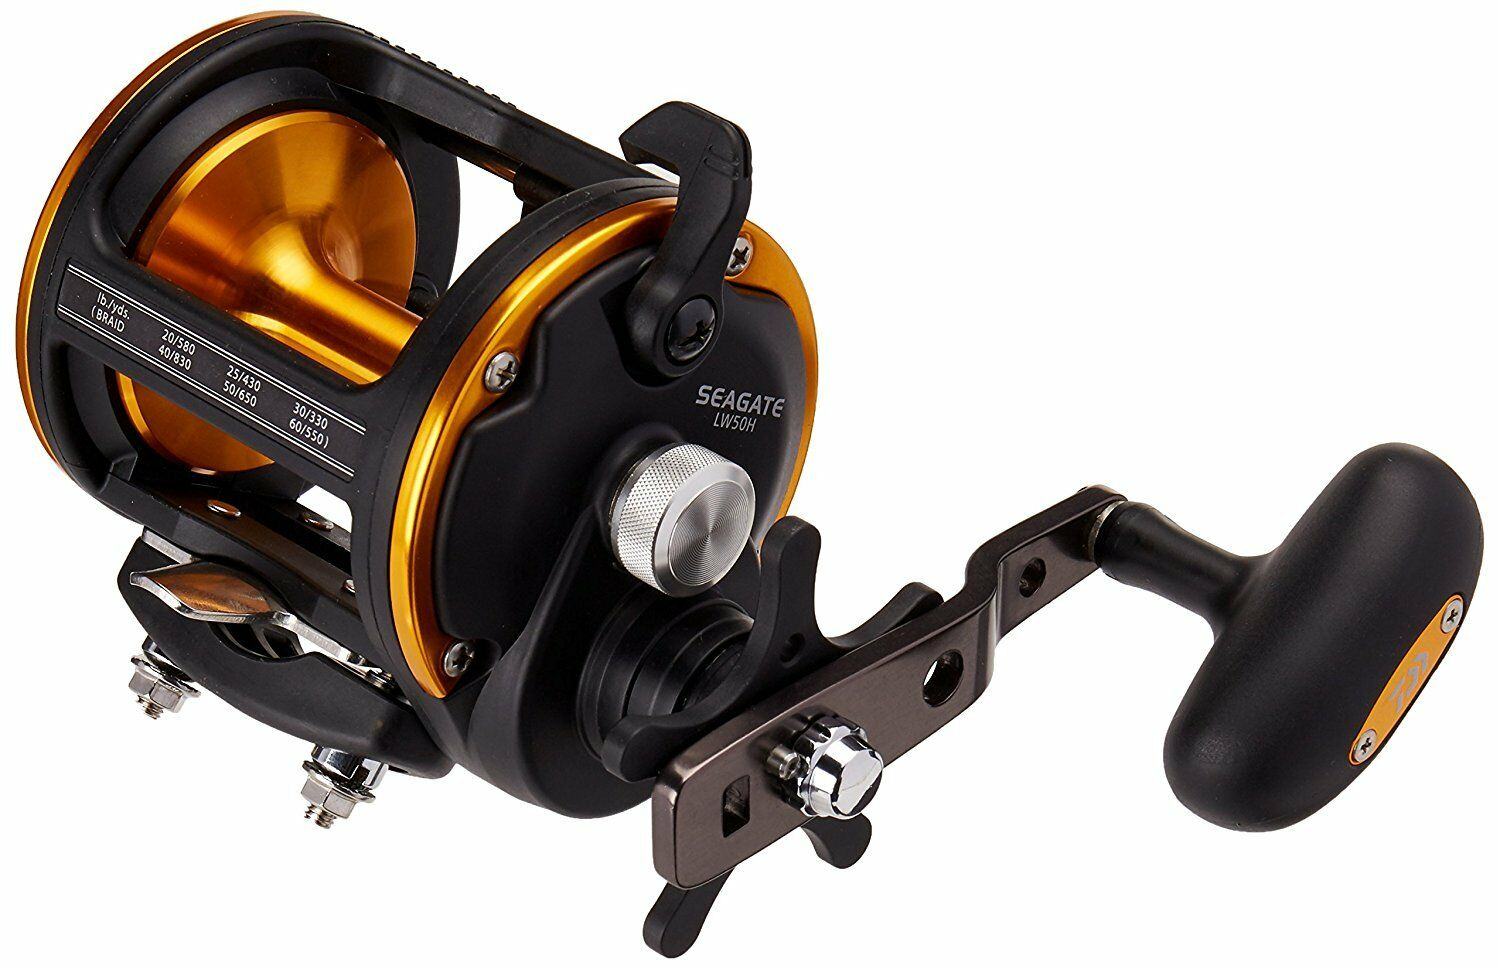 Daiwa Seagate Levelwind 6.1 1 Right Hand Saltwater Fishing Reel 50H - SGTLW50H